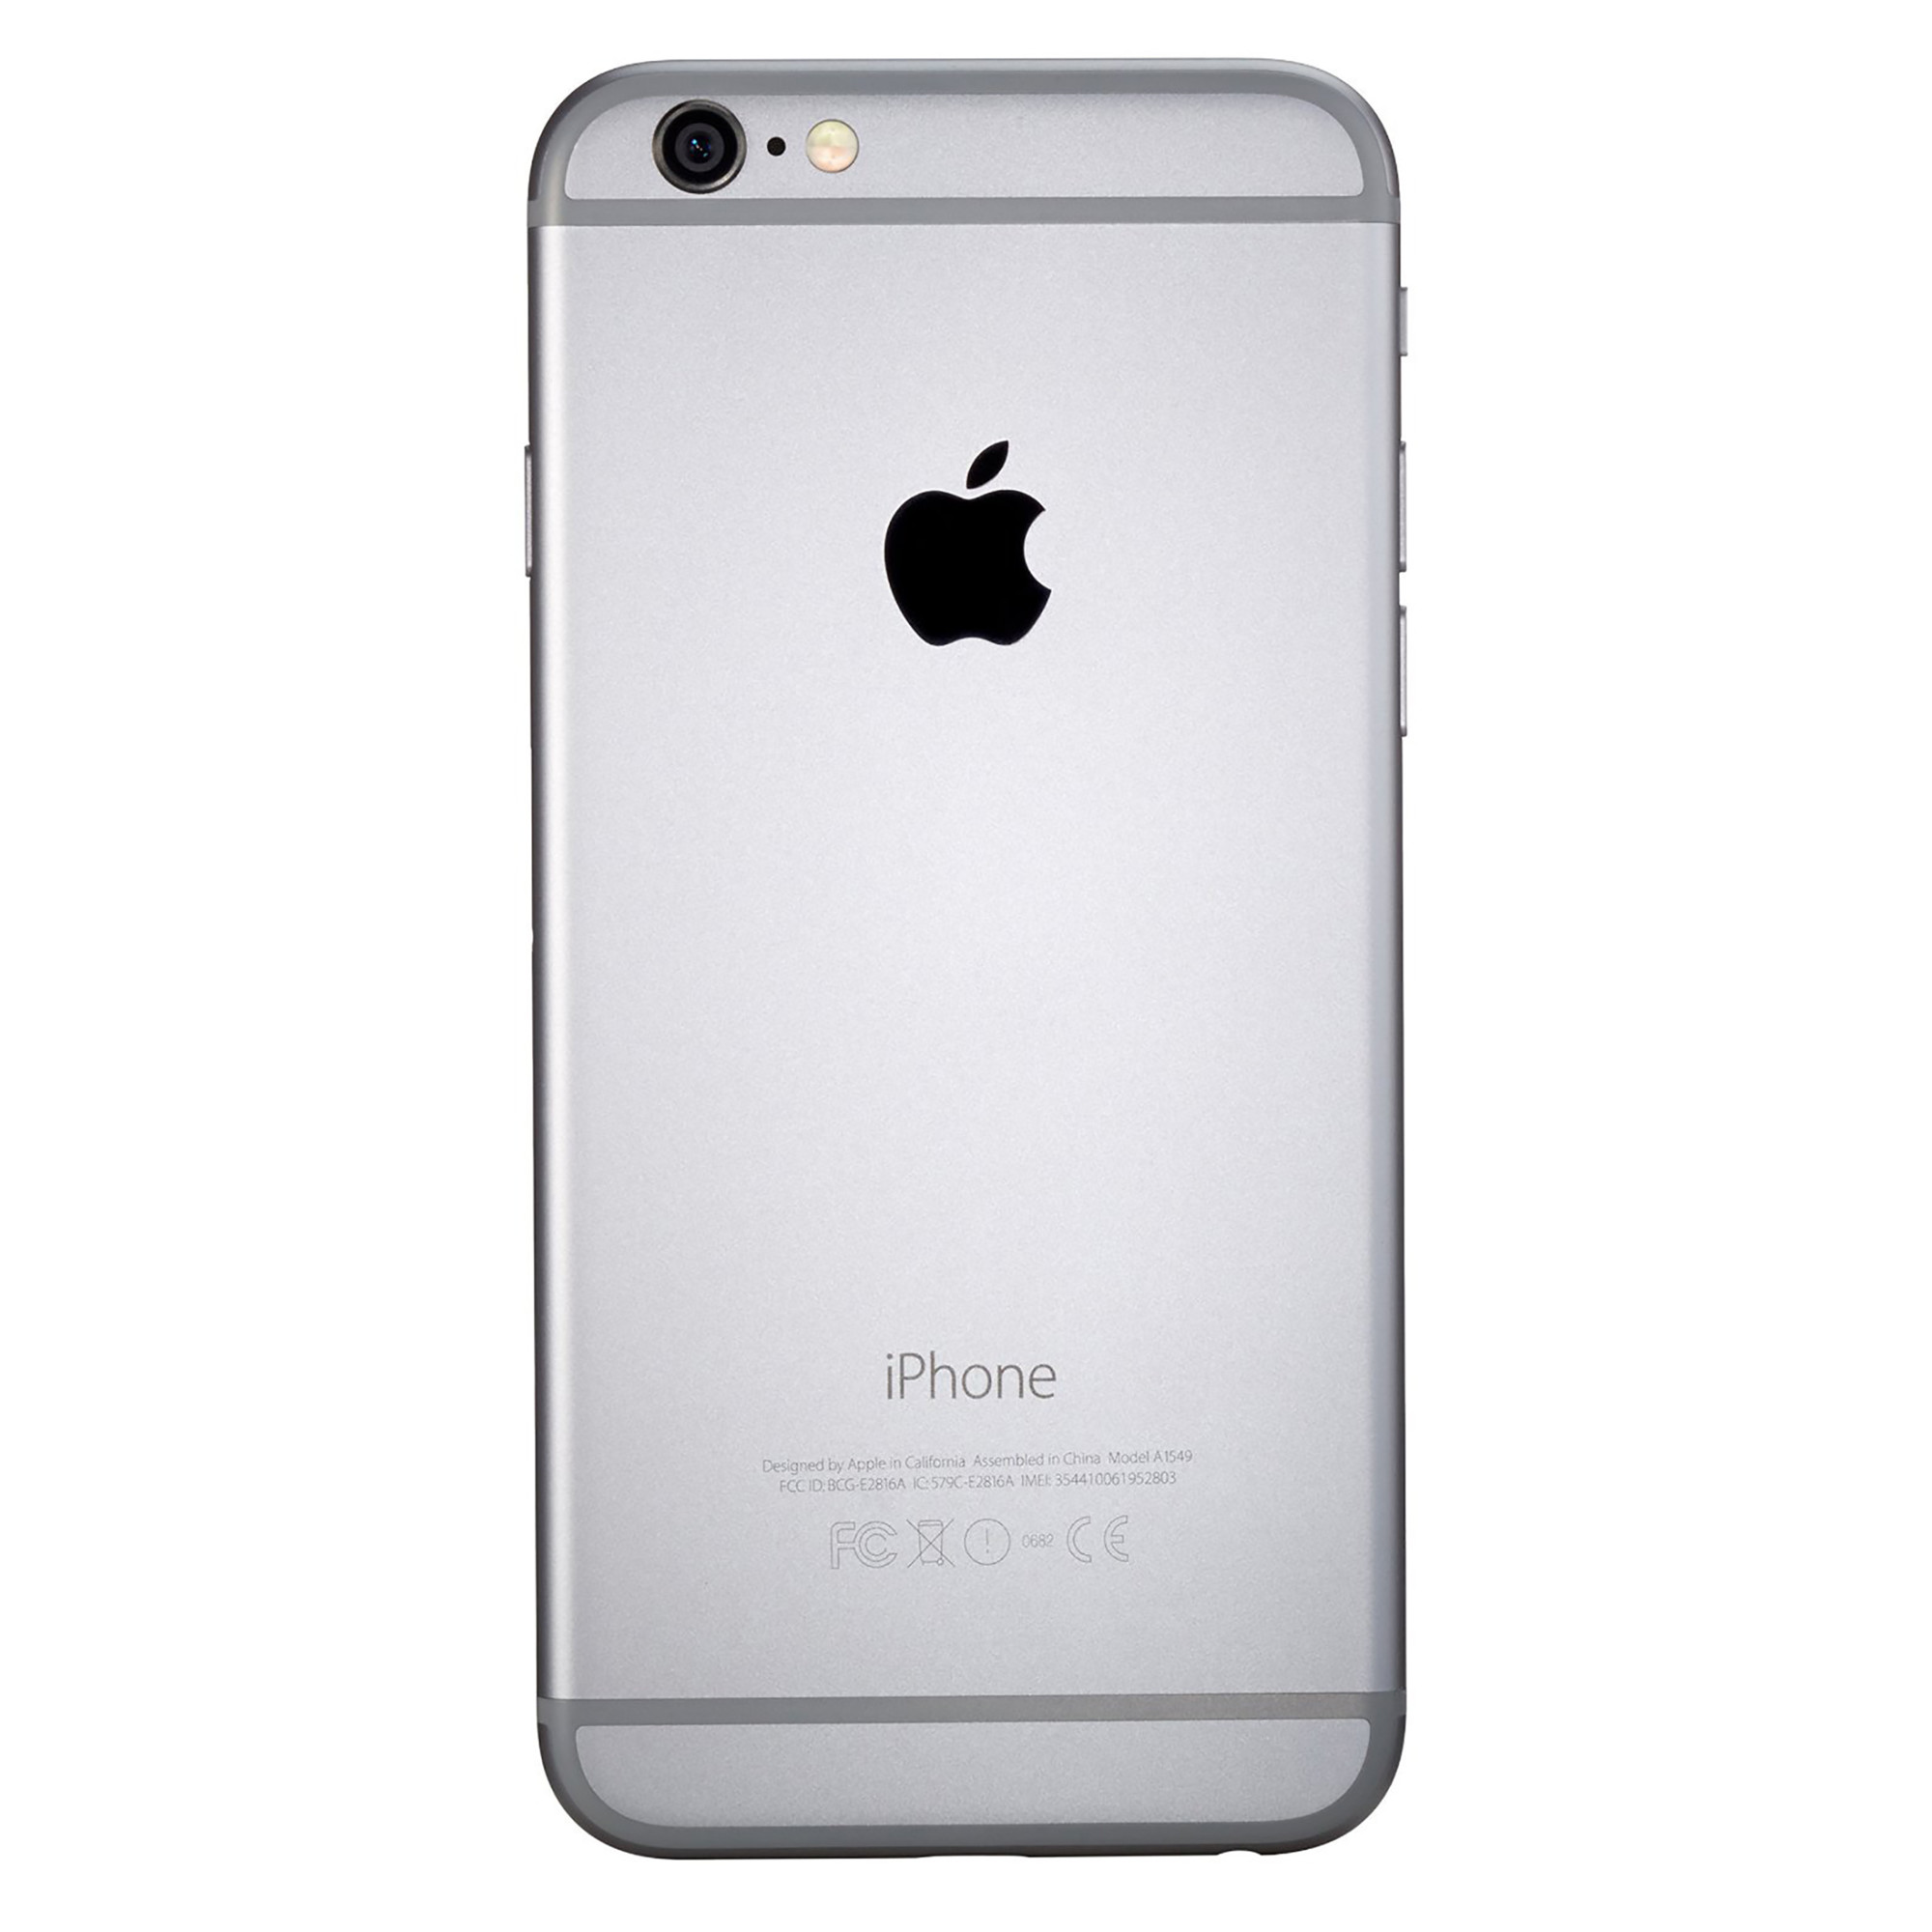 apple iphone 6 64gb at t locked 4g lte phone w 8 megapixel camera ebay. Black Bedroom Furniture Sets. Home Design Ideas